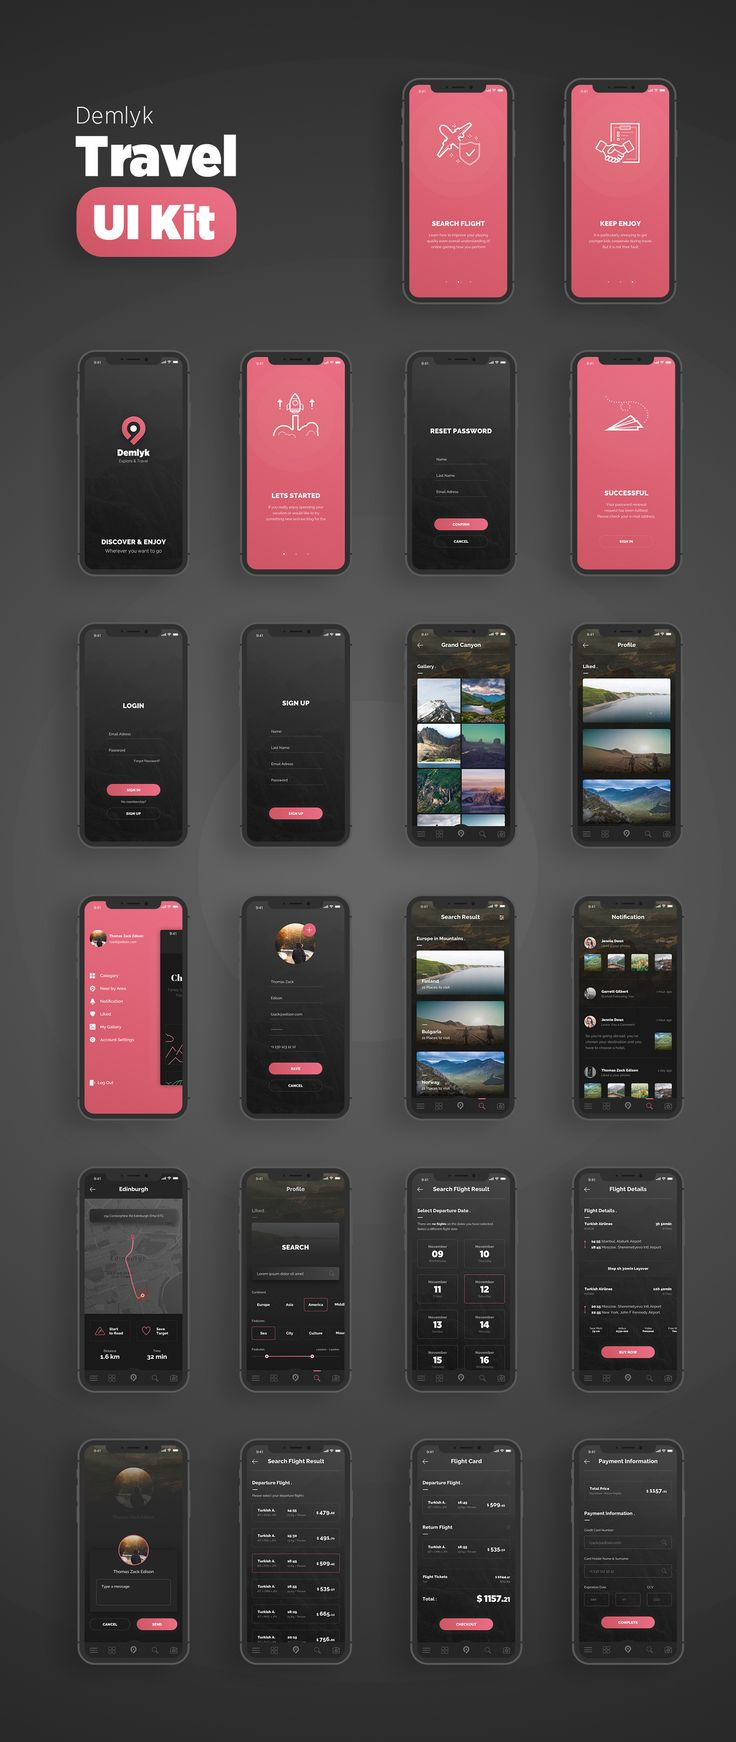 Innovative application in accordance with the modern age. A total of 62 artboards in black and white themes. Designed with UI / UX in mind. Grid-friendly, simple editability and excellent foldering. I offer you a perfect design with 2 different color. Photoshop and Experience Design files will be added in the future.